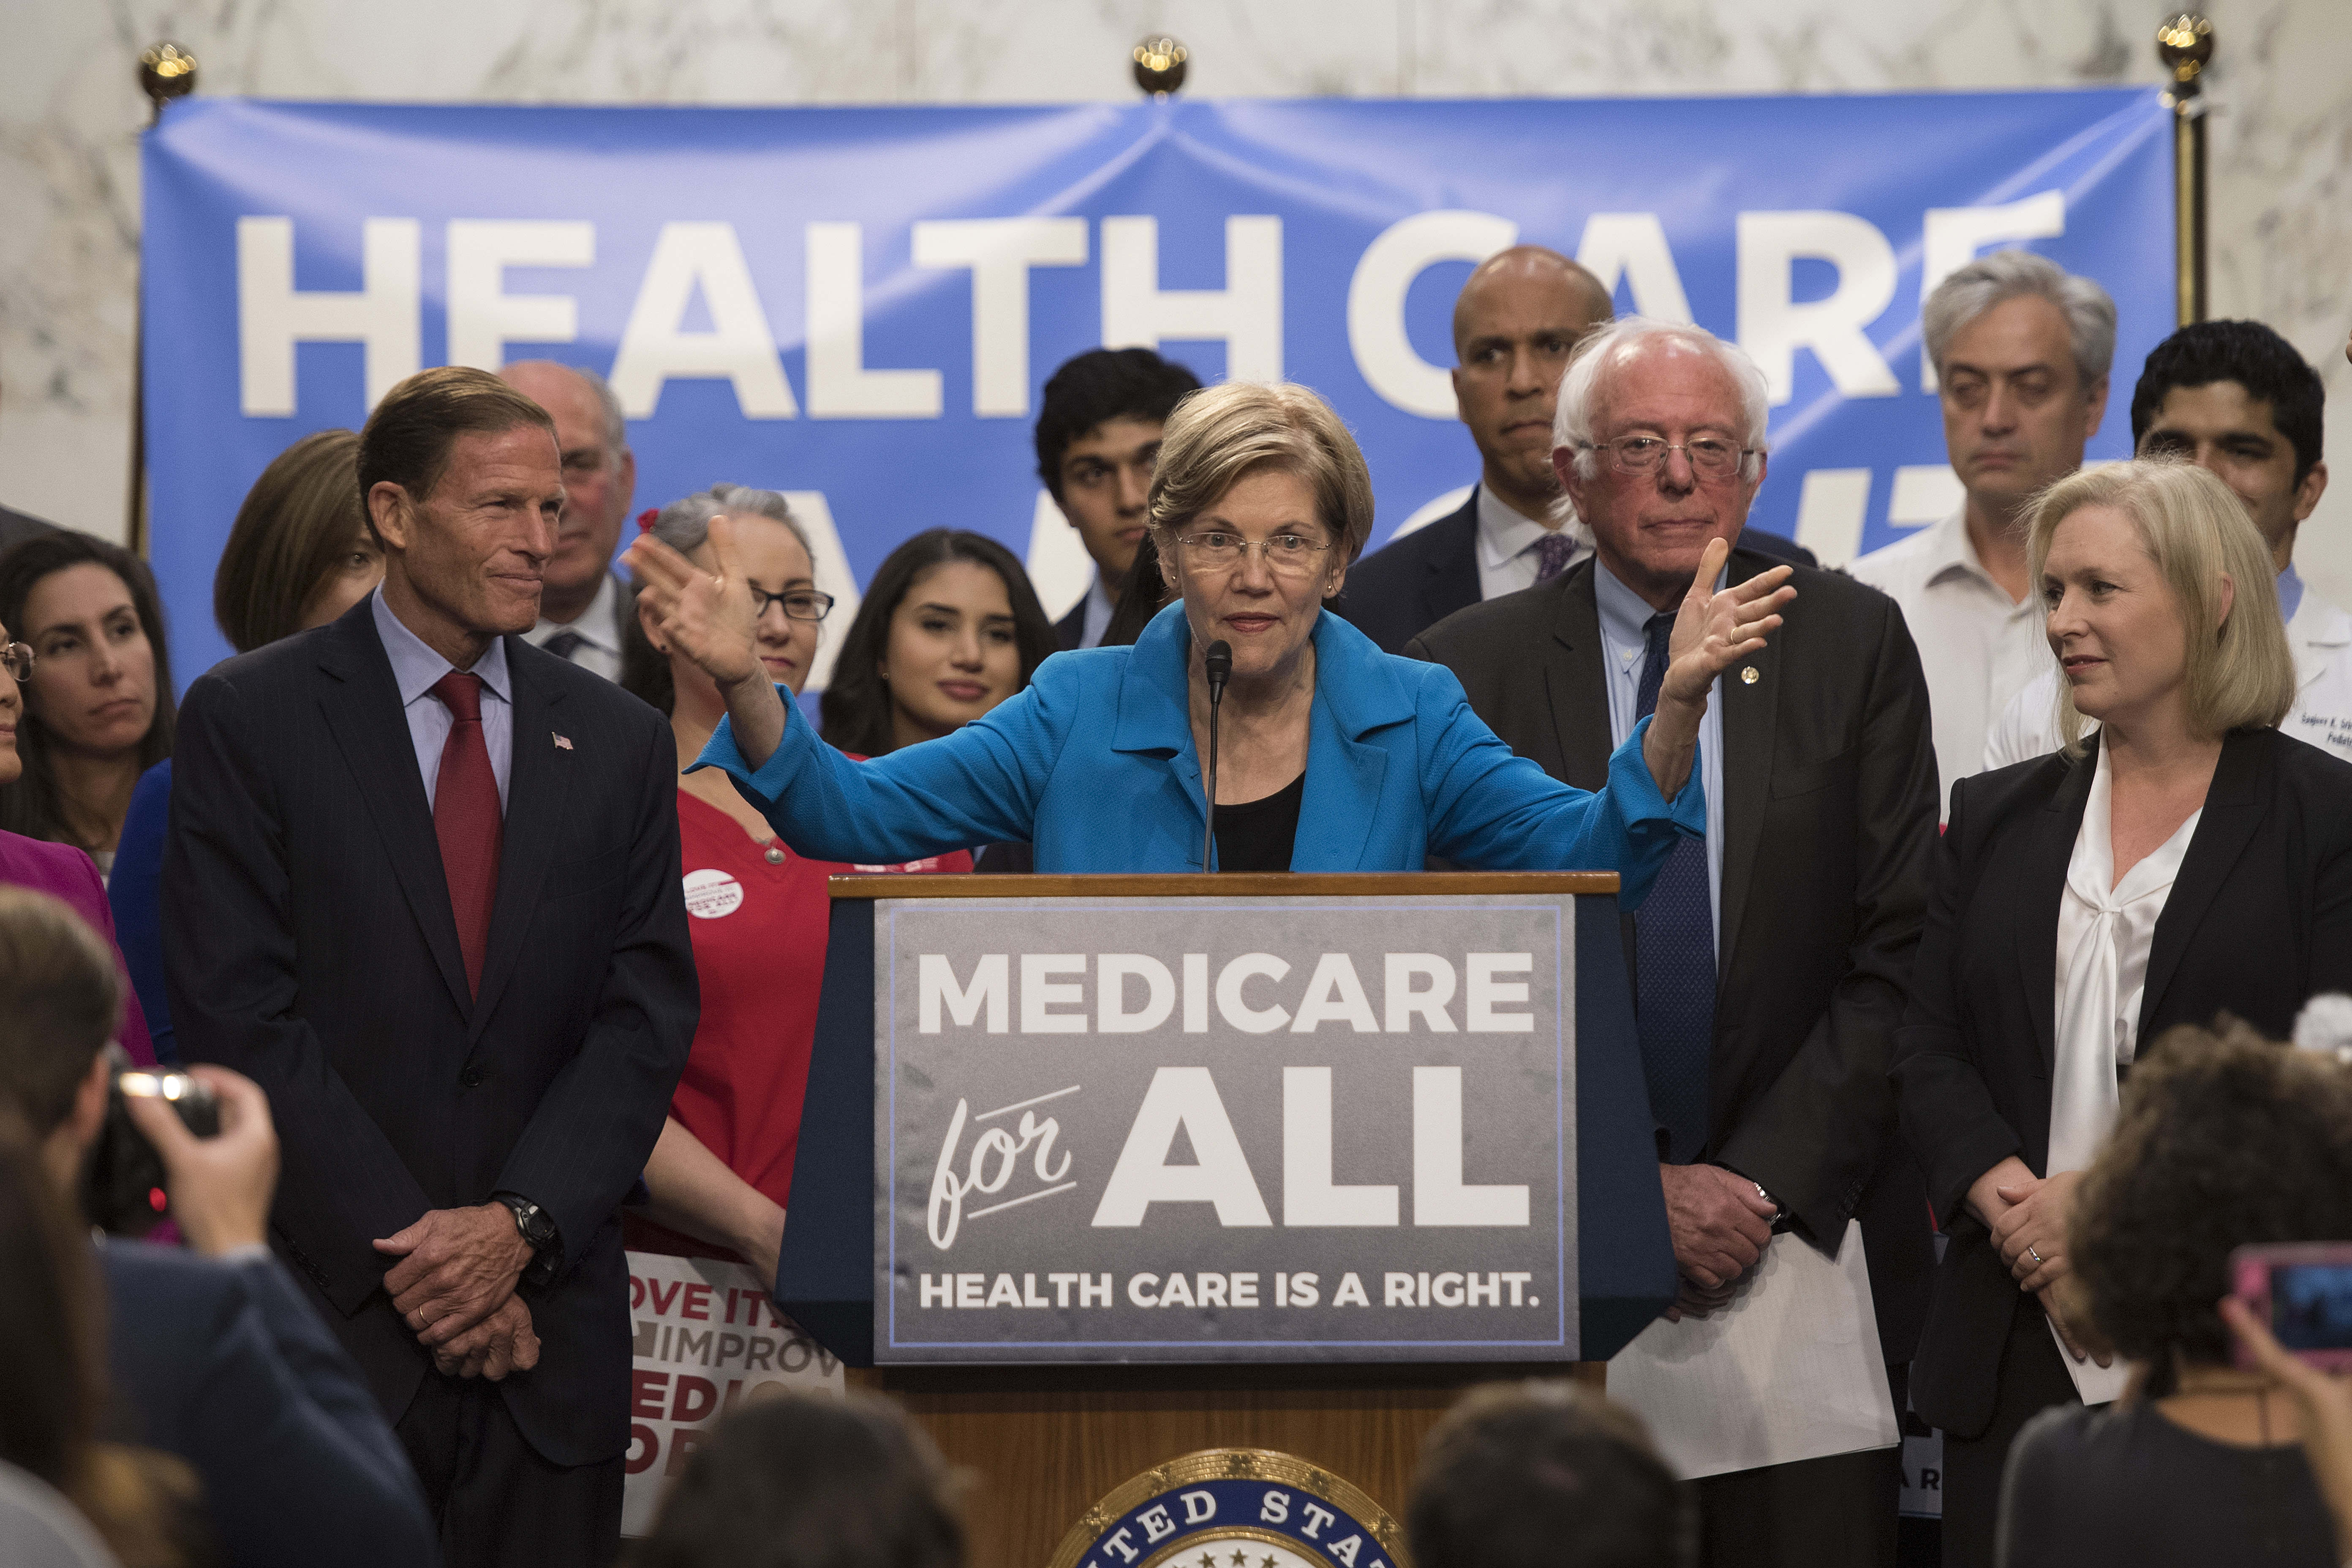 US Senator Elizabeth Warren (C), Democrat from Massachusetts, speaks with US Senator Bernie Sanders (2nd R), Independent from Vermont, as they discusses Medicare for All legislation on Capitol Hill in Washington, DC, on September 13, 2017. (JIM WATSON/AFP/Getty Images)